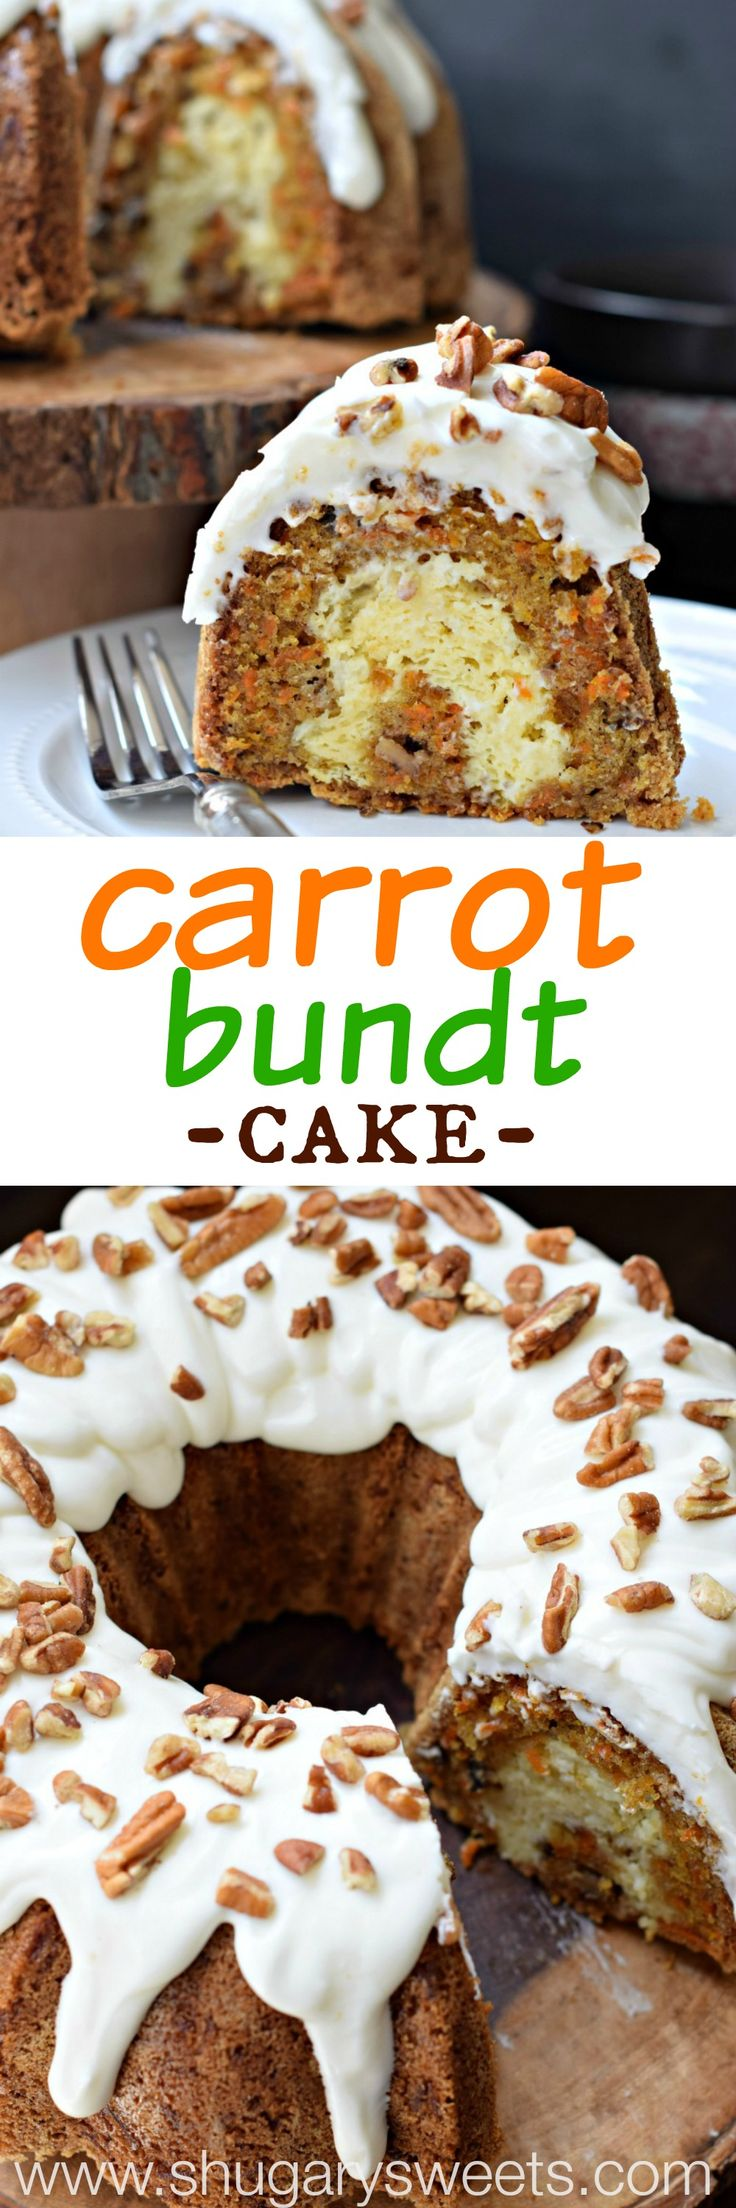 Carrot Bundt Cake with a ribbon of cheesecake swirl and Cream Cheese frosting! Topped with some chopped pecans! #thinkfisher: